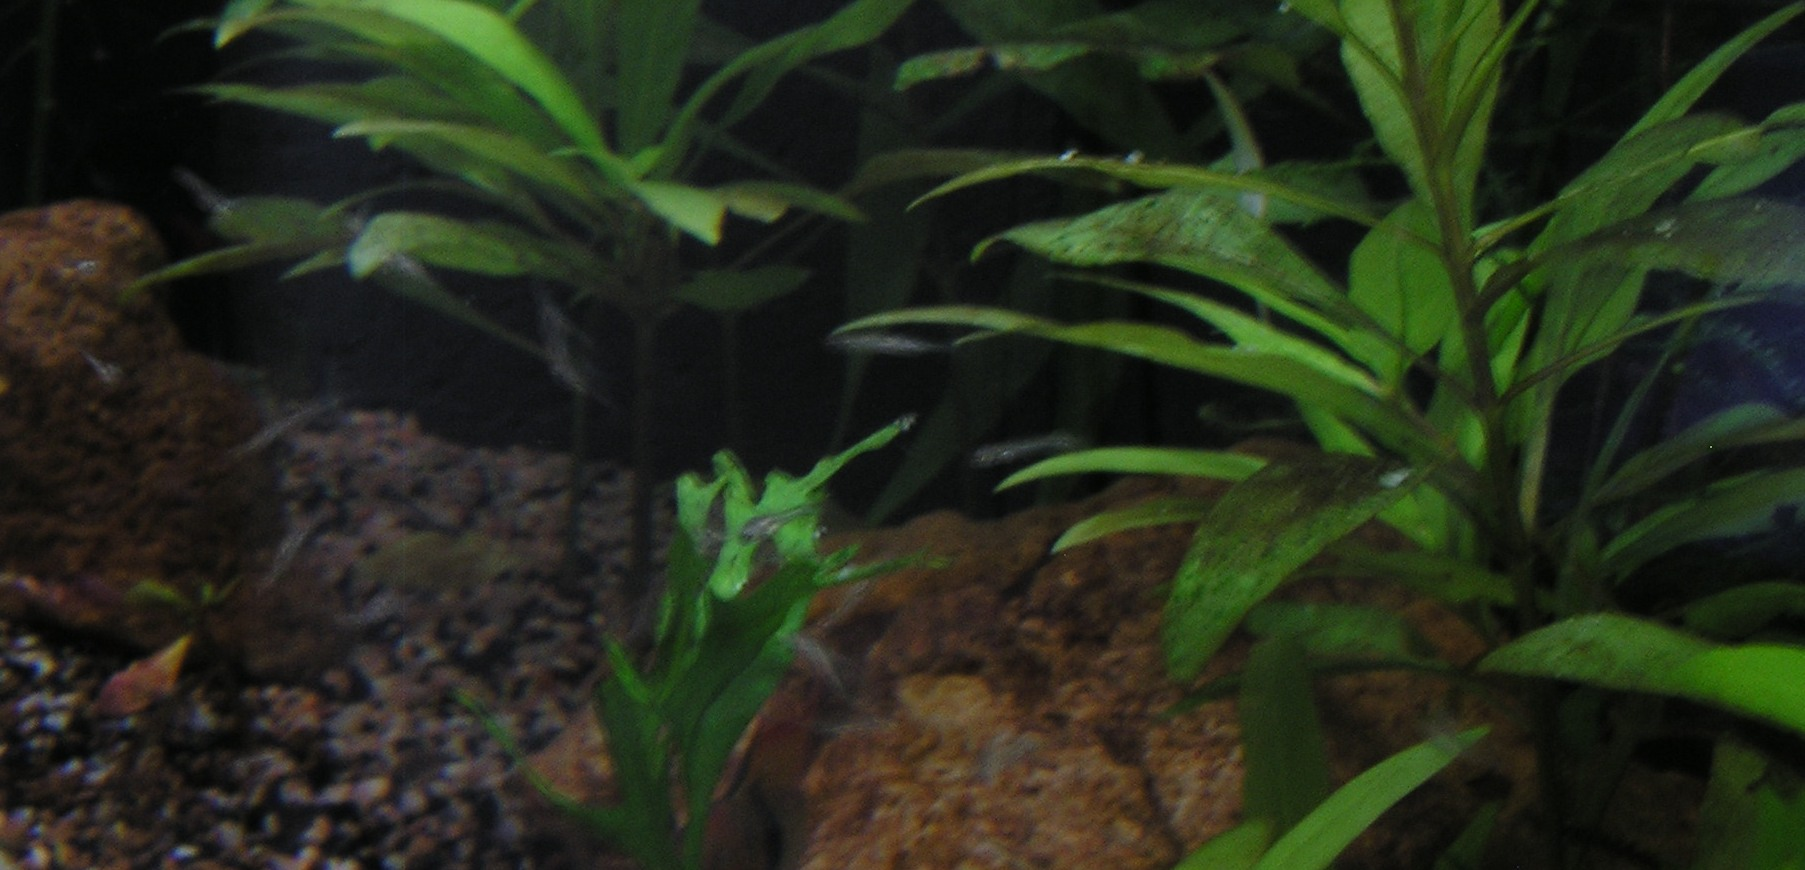 photo https://www.aquariophilie.org/images/article/Mikrogeophagus-ramirezi-reproduction-en-image_a04041006_0.jpeg